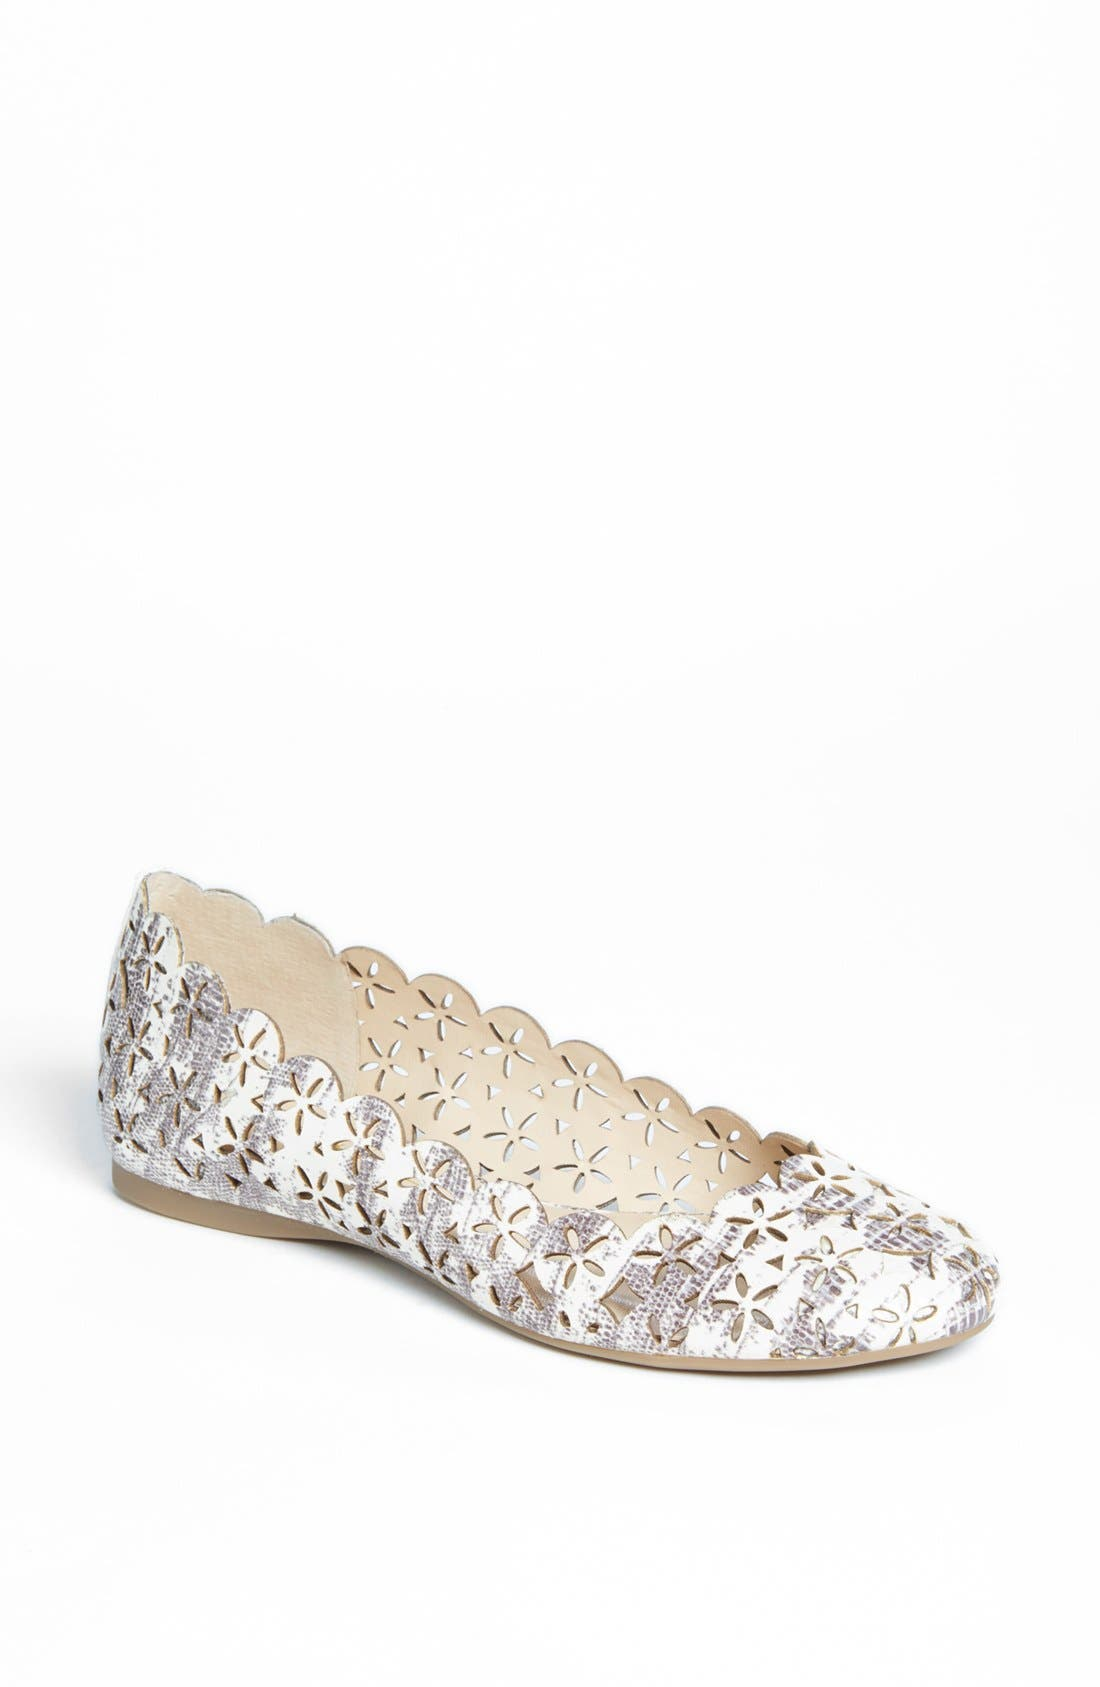 Alternate Image 1 Selected - Jessica Simpson 'Silviah' Flat